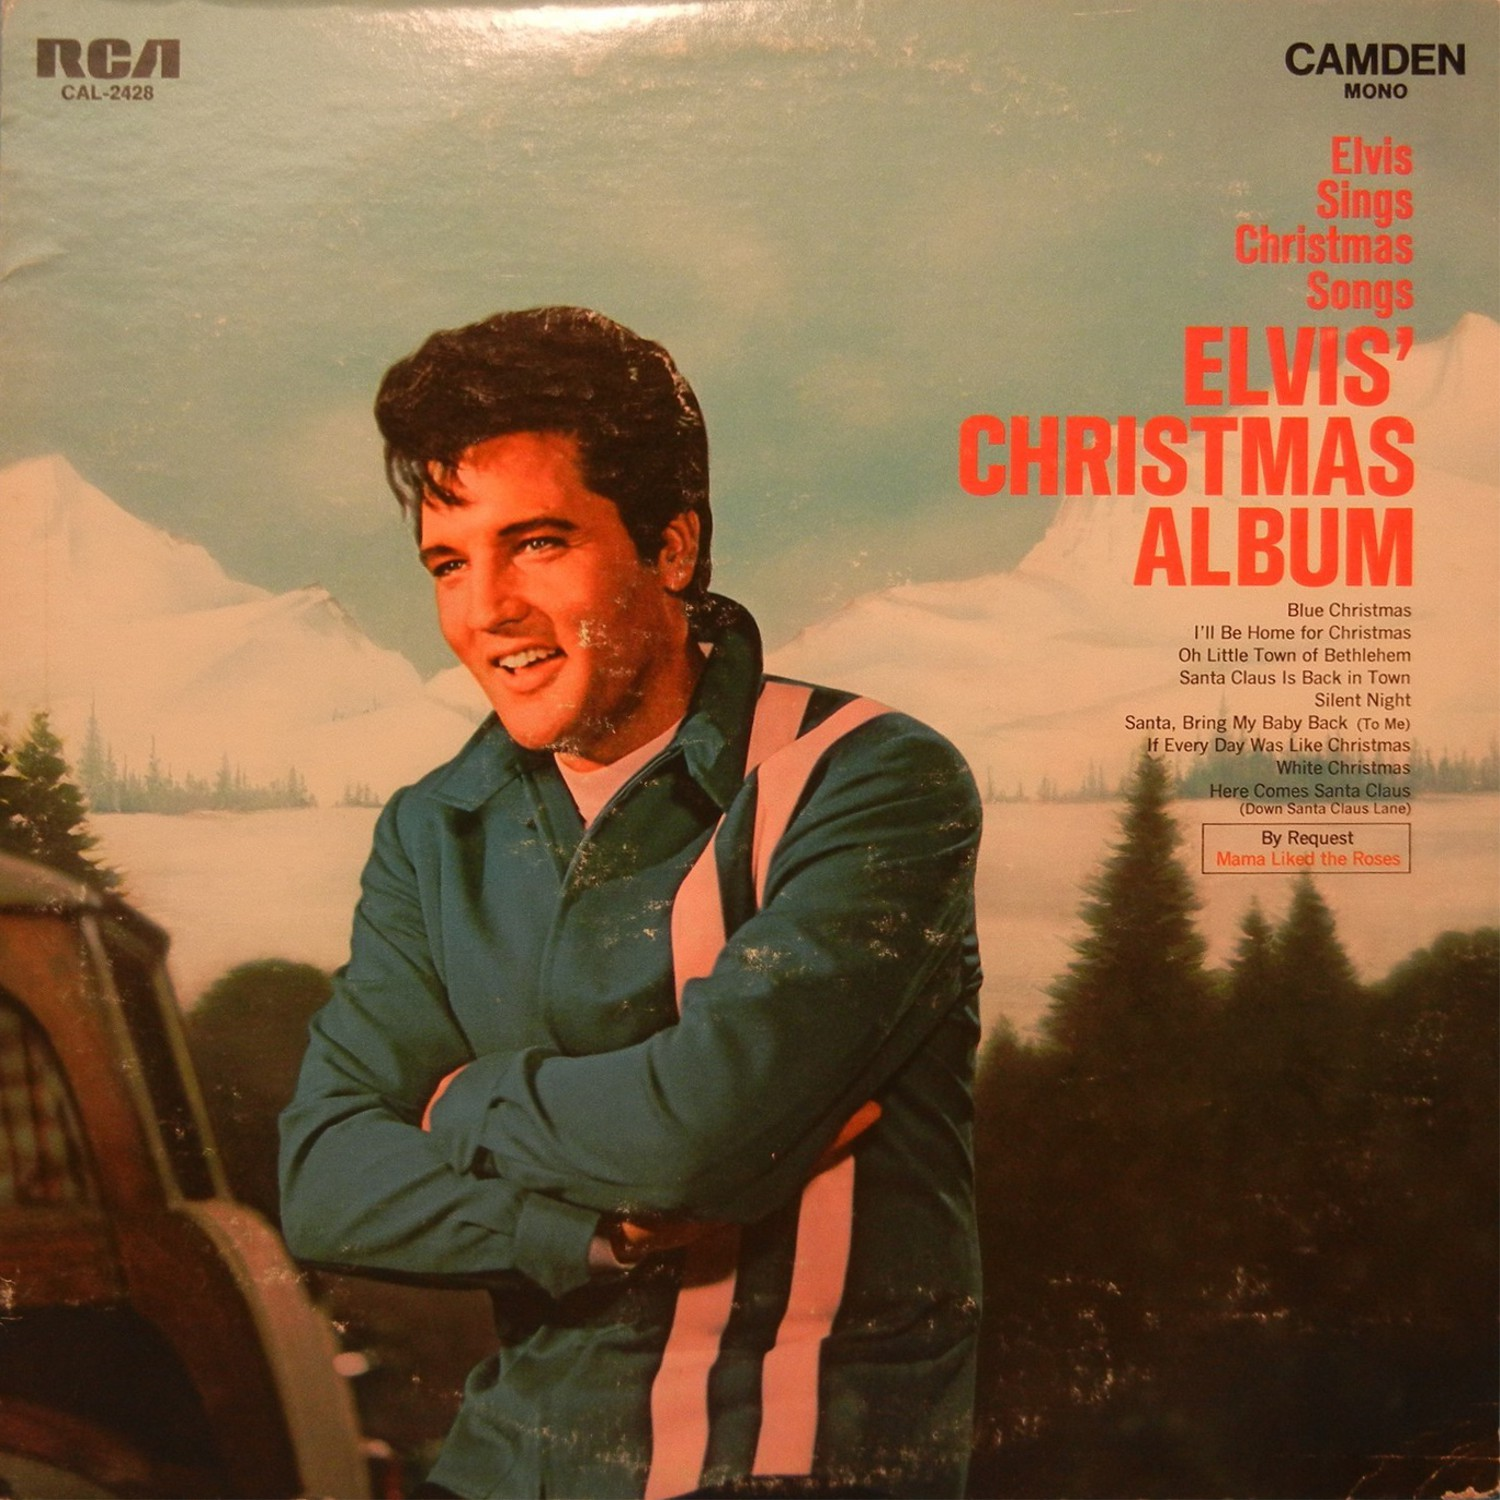 ELVIS' CHRISTMAS ALBUM Cal-2428ailk8j